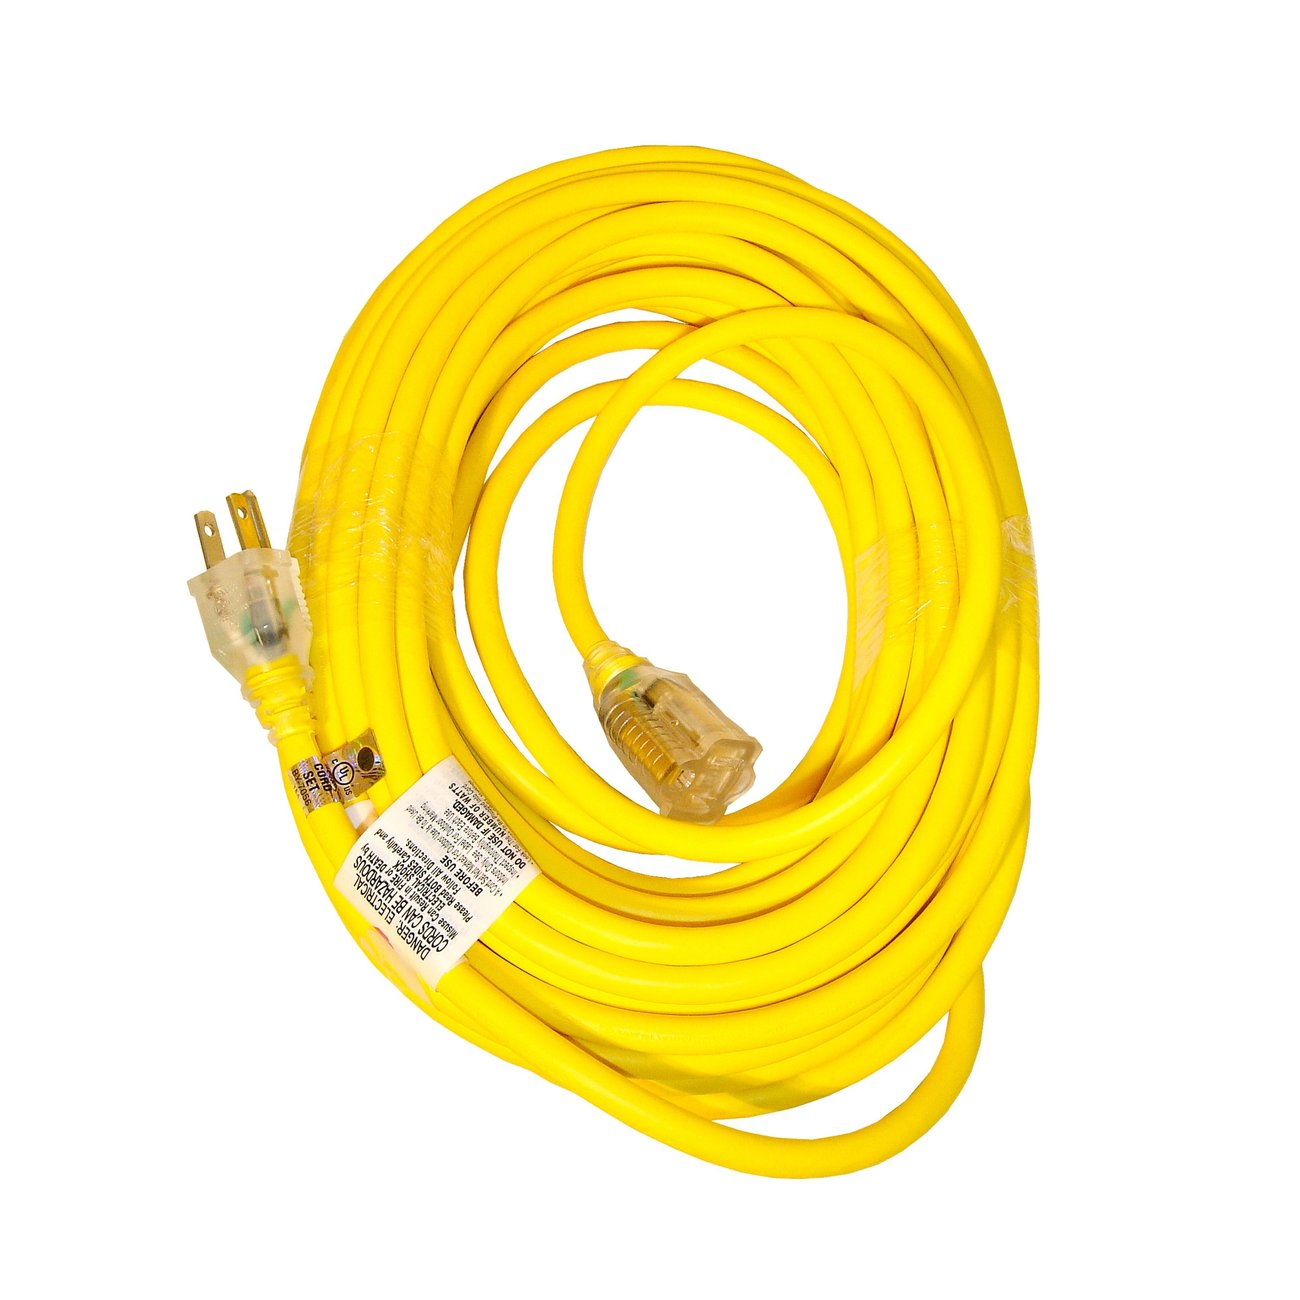 Snow Joe B Low Temp Extension Cord 50 Foot 14 Gauge Lighted End